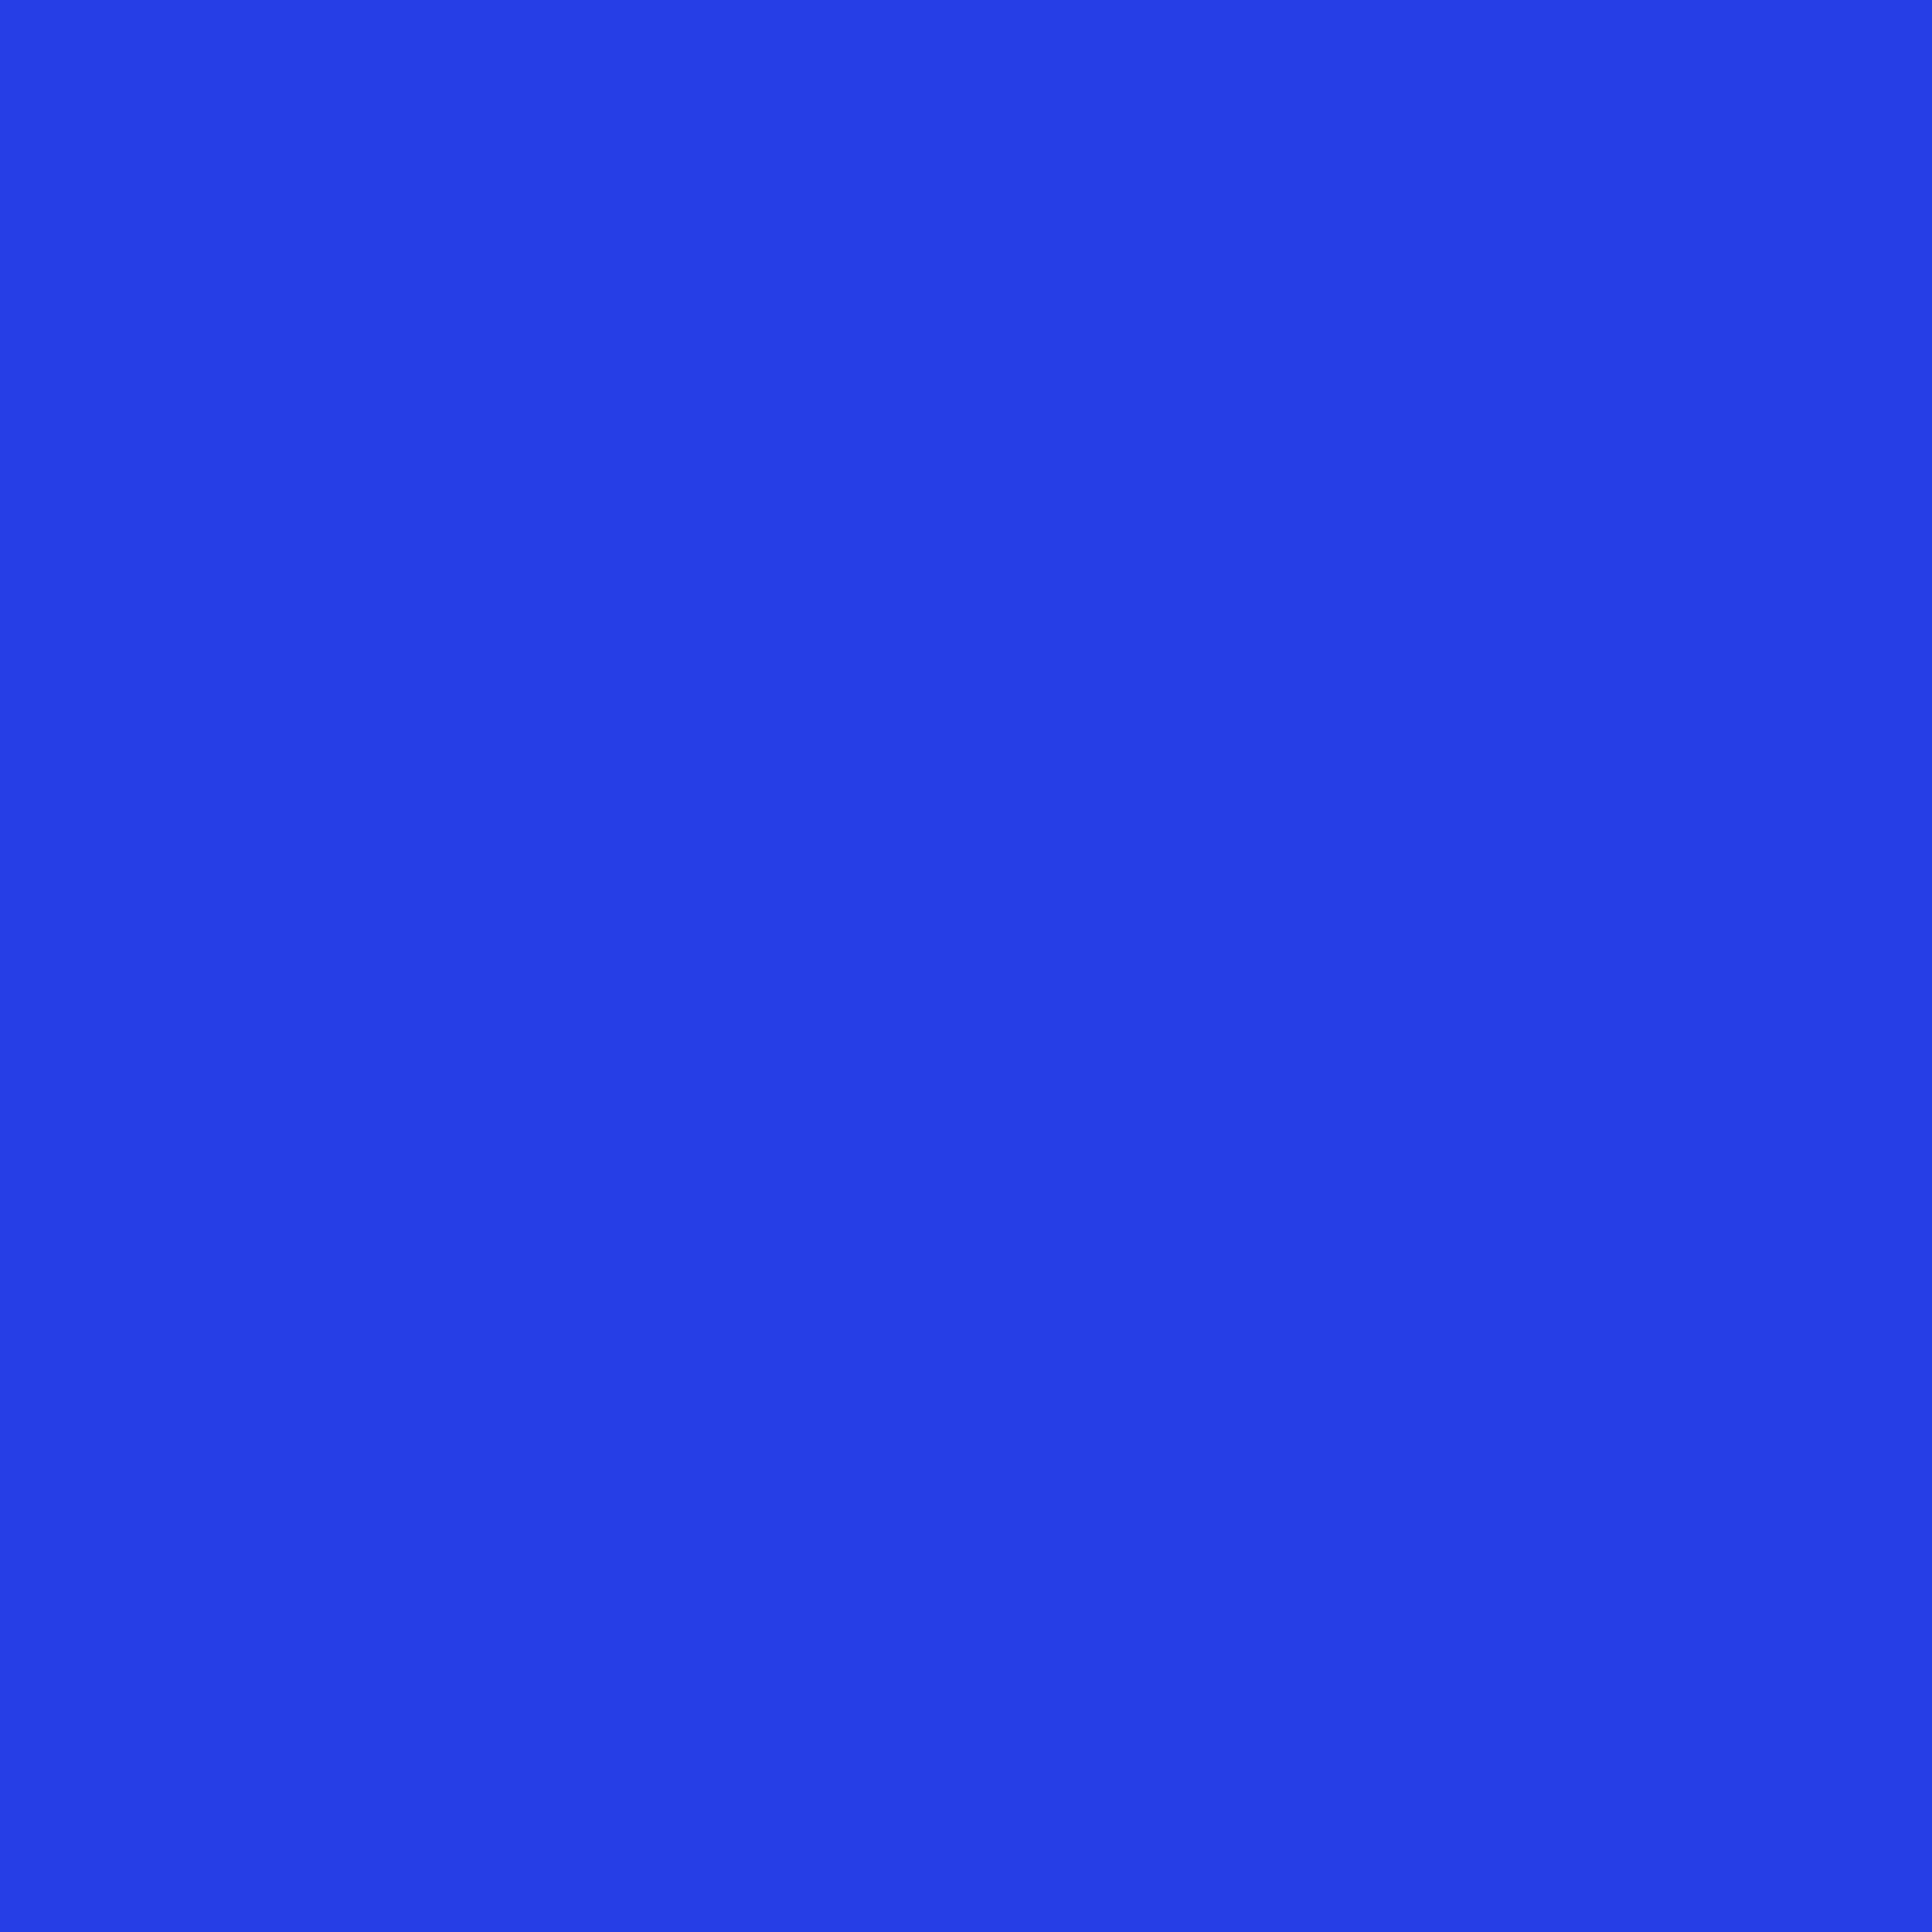 2048x2048 Palatinate Blue Solid Color Background